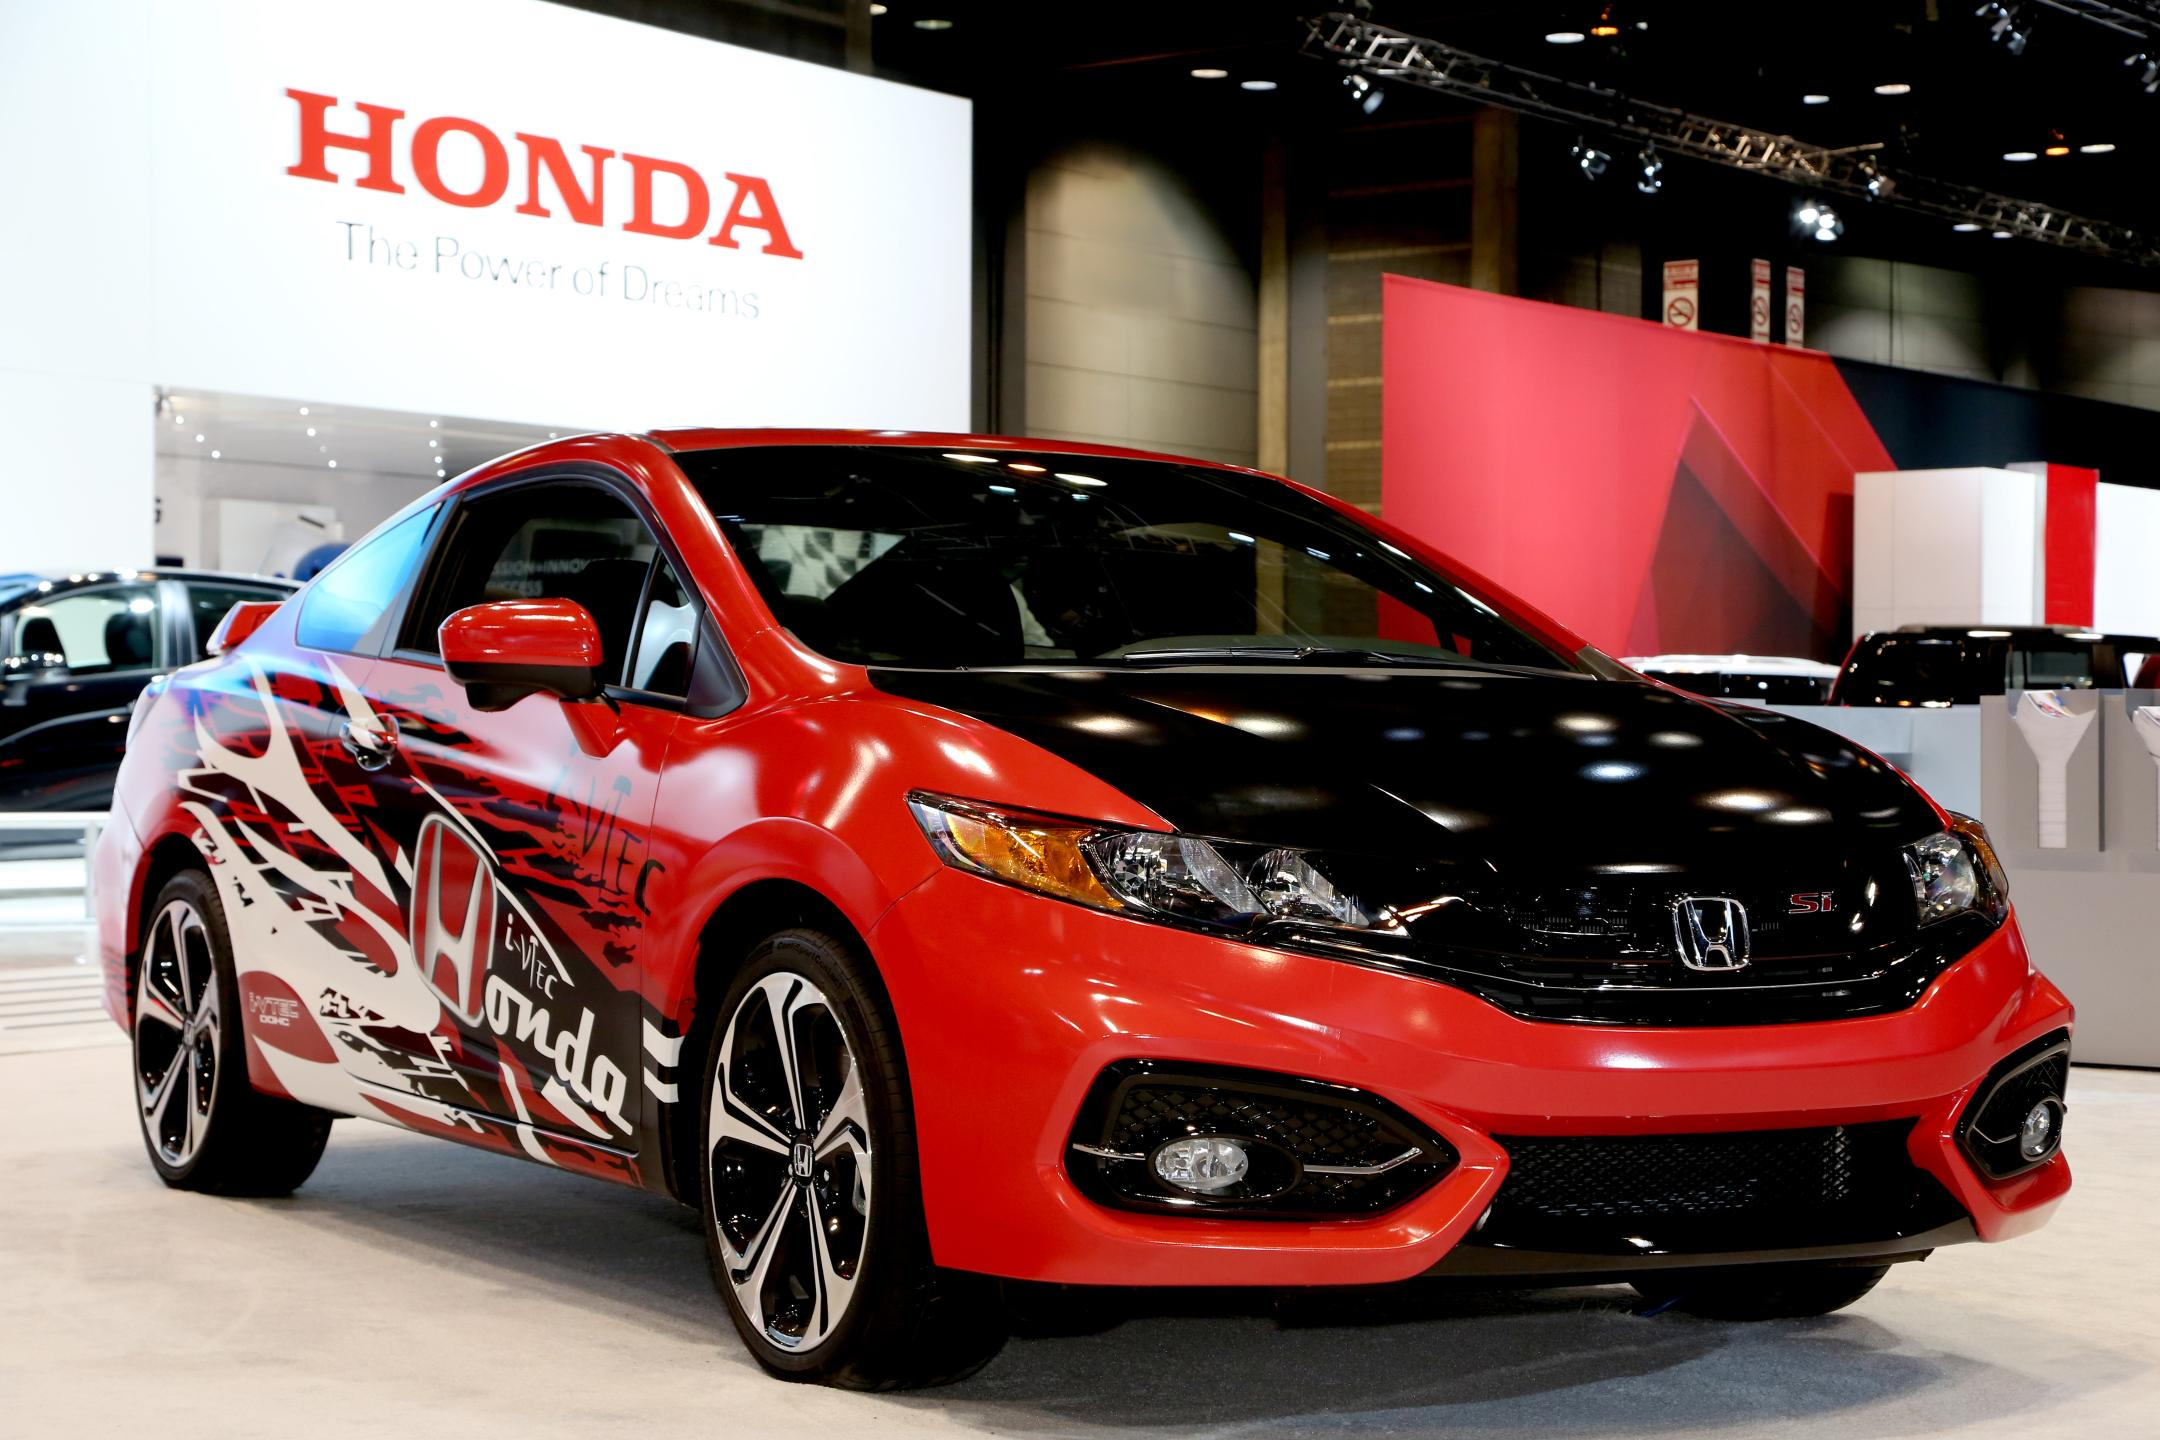 Honda Civic Si Built From Forza Motorsport Gamers Design